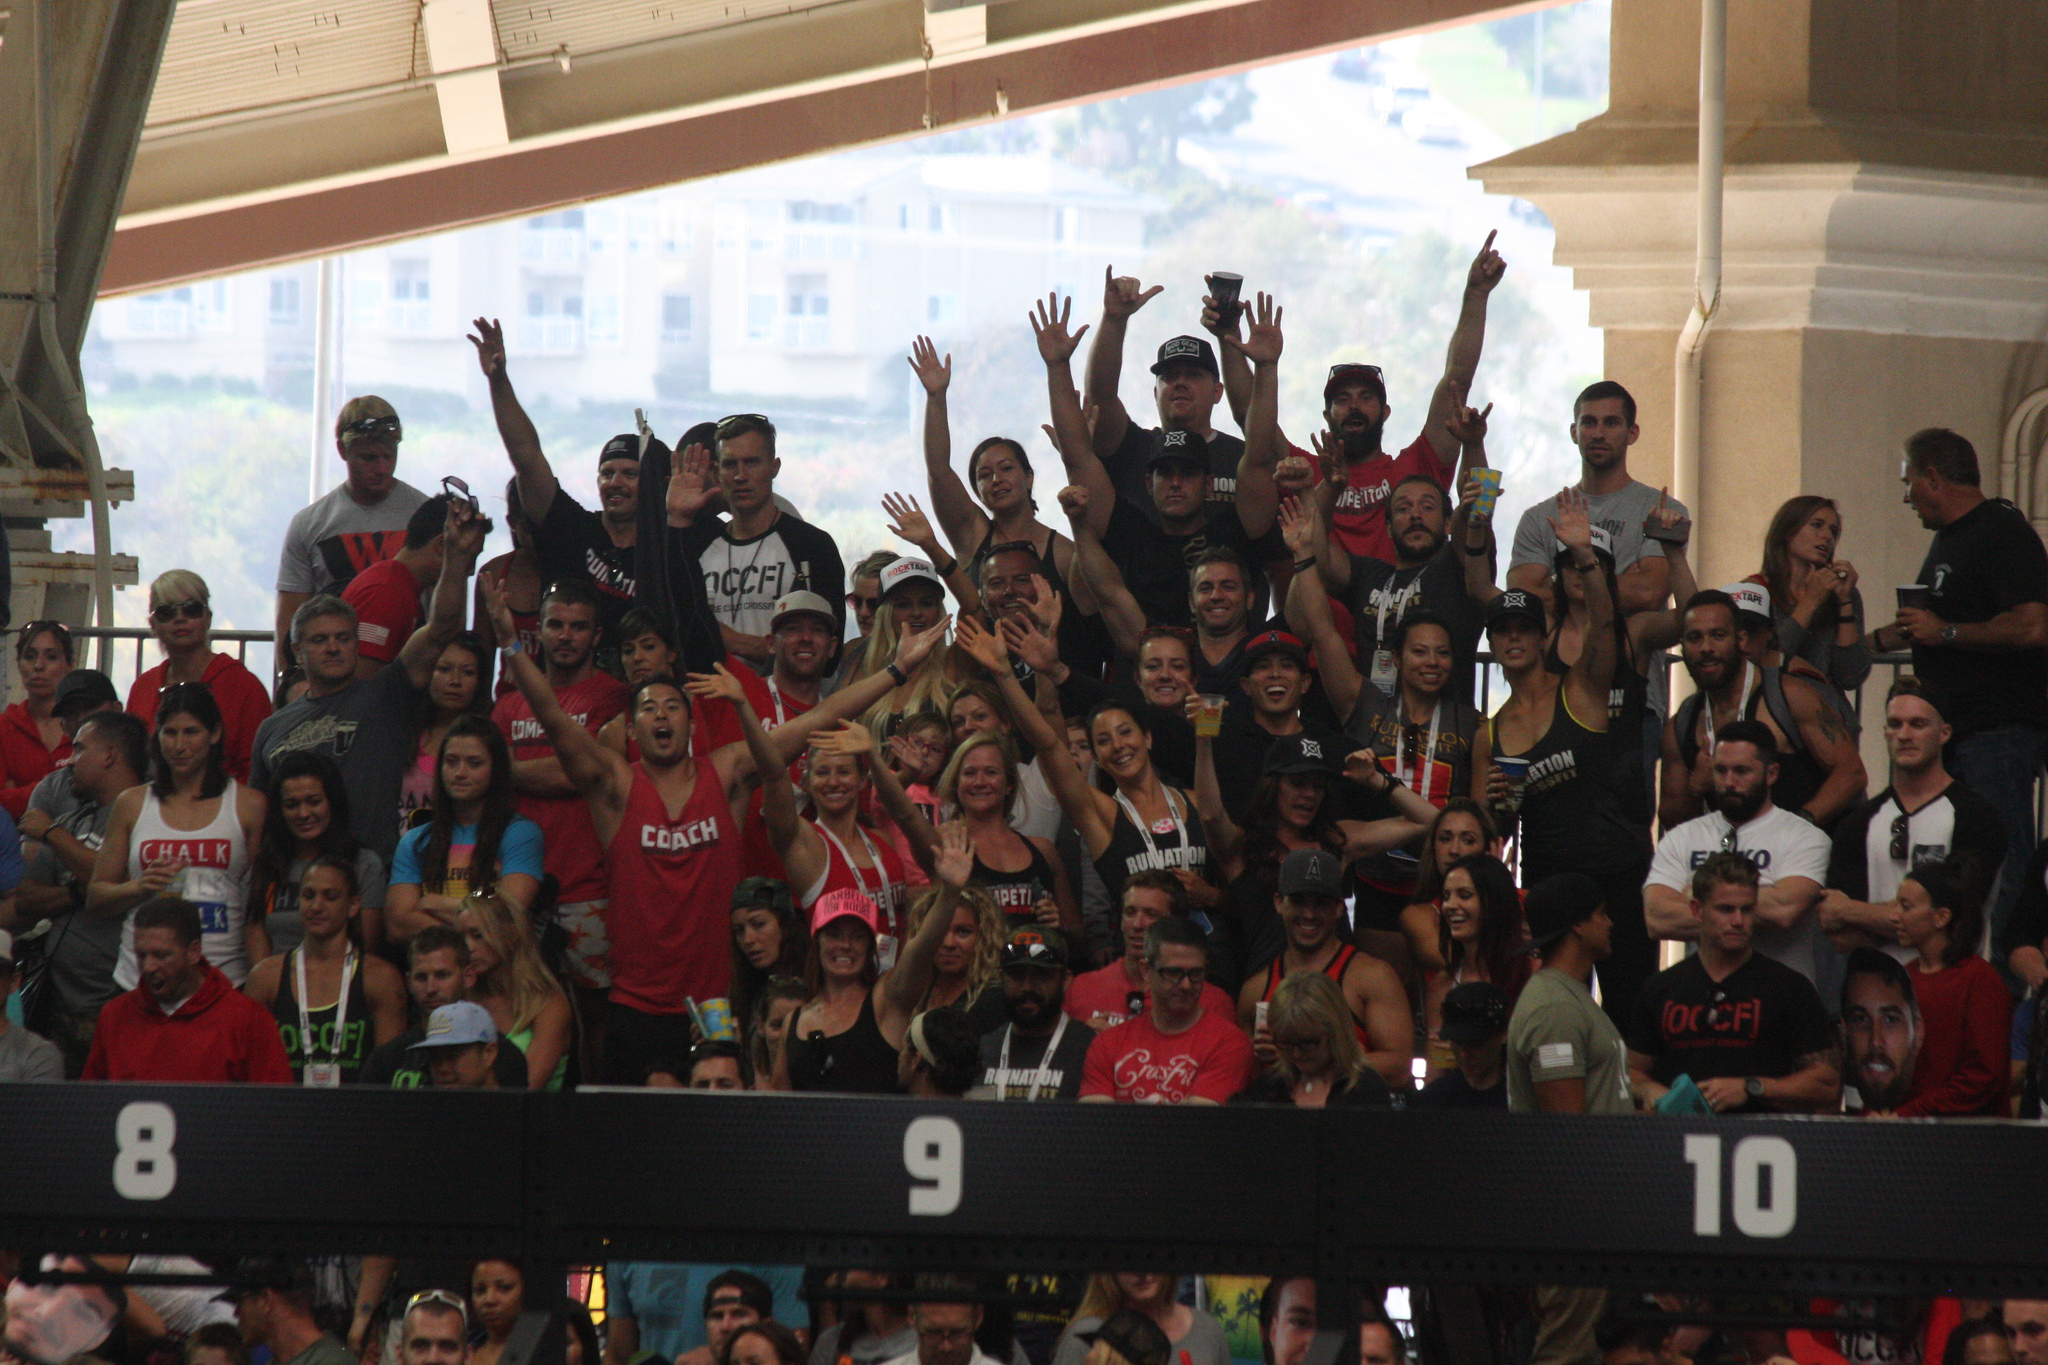 The Nation rolled deep at the 2014 Crossfit Games SoCal Regional